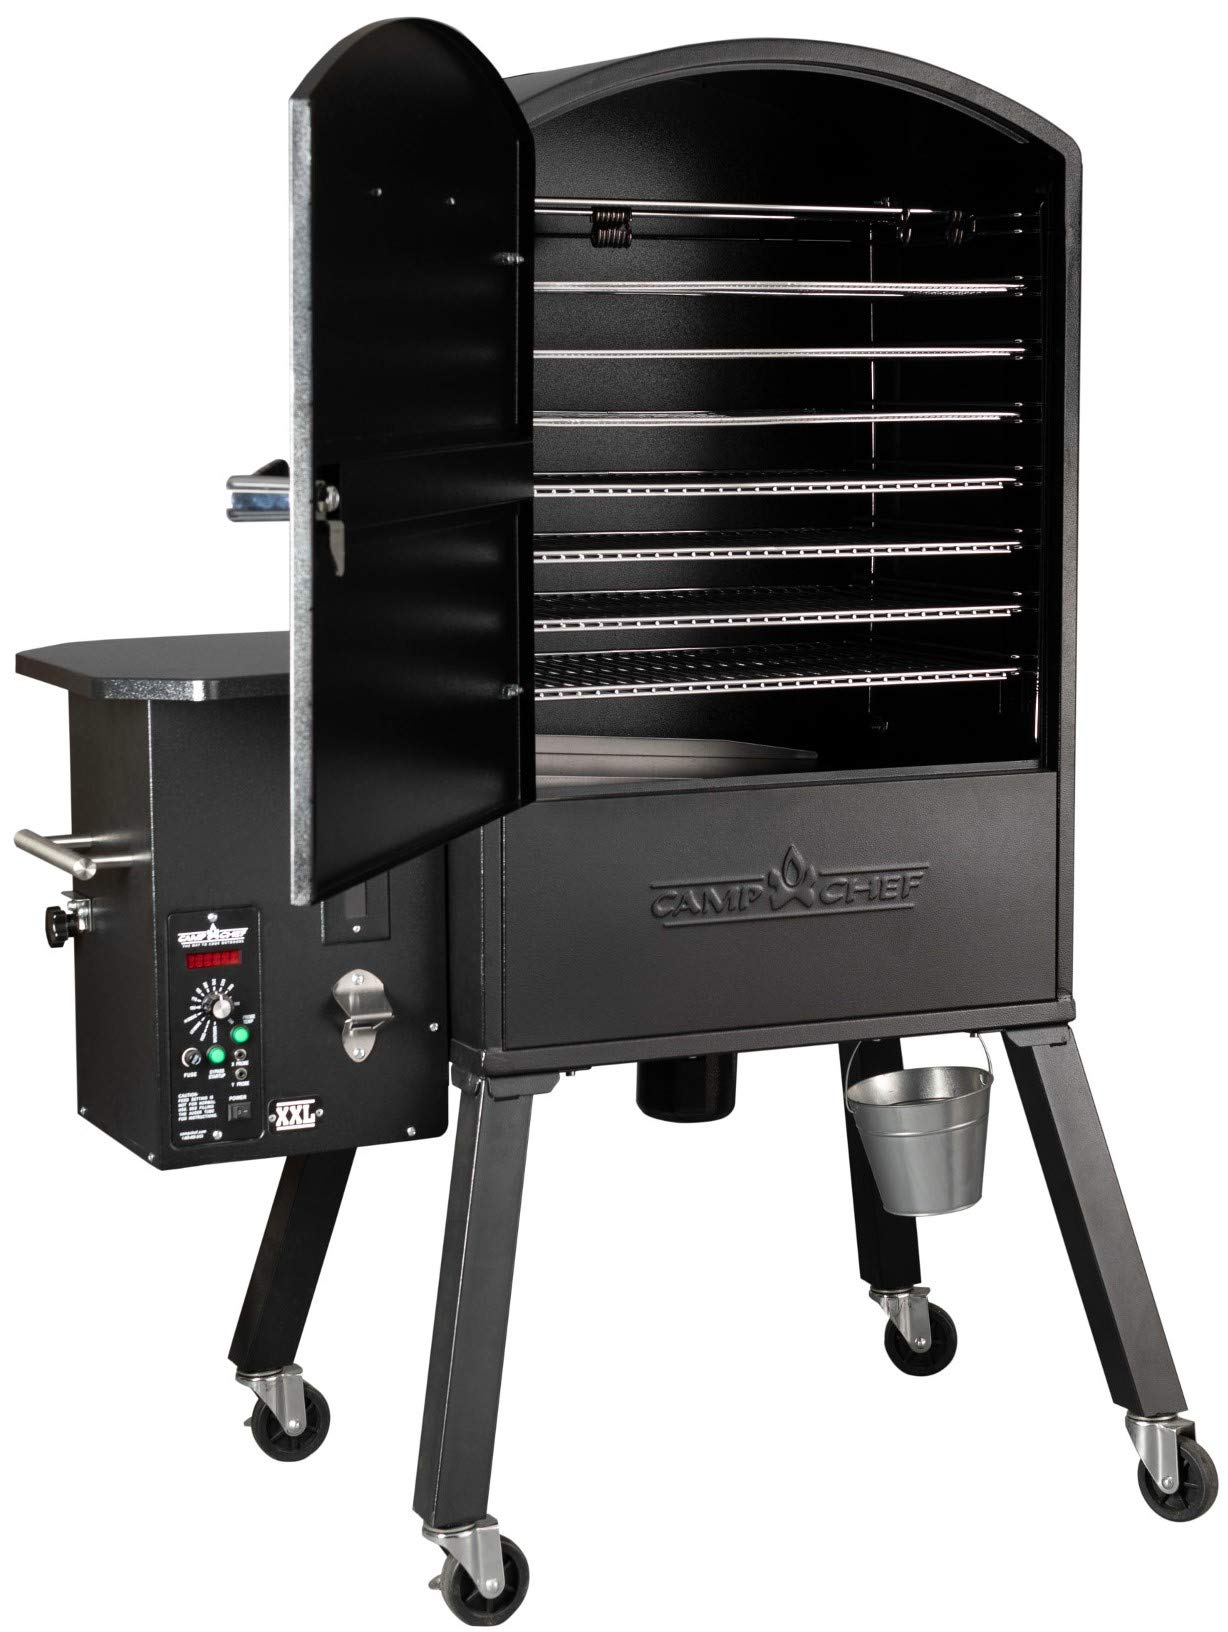 Camp Chef XXL Vertical Pellet Grill and Smoker (PGVXXL) - Smart Smoke Technology - Patented Ash Cleanout - Digital Display - Pellet Purge System by Camp Chef